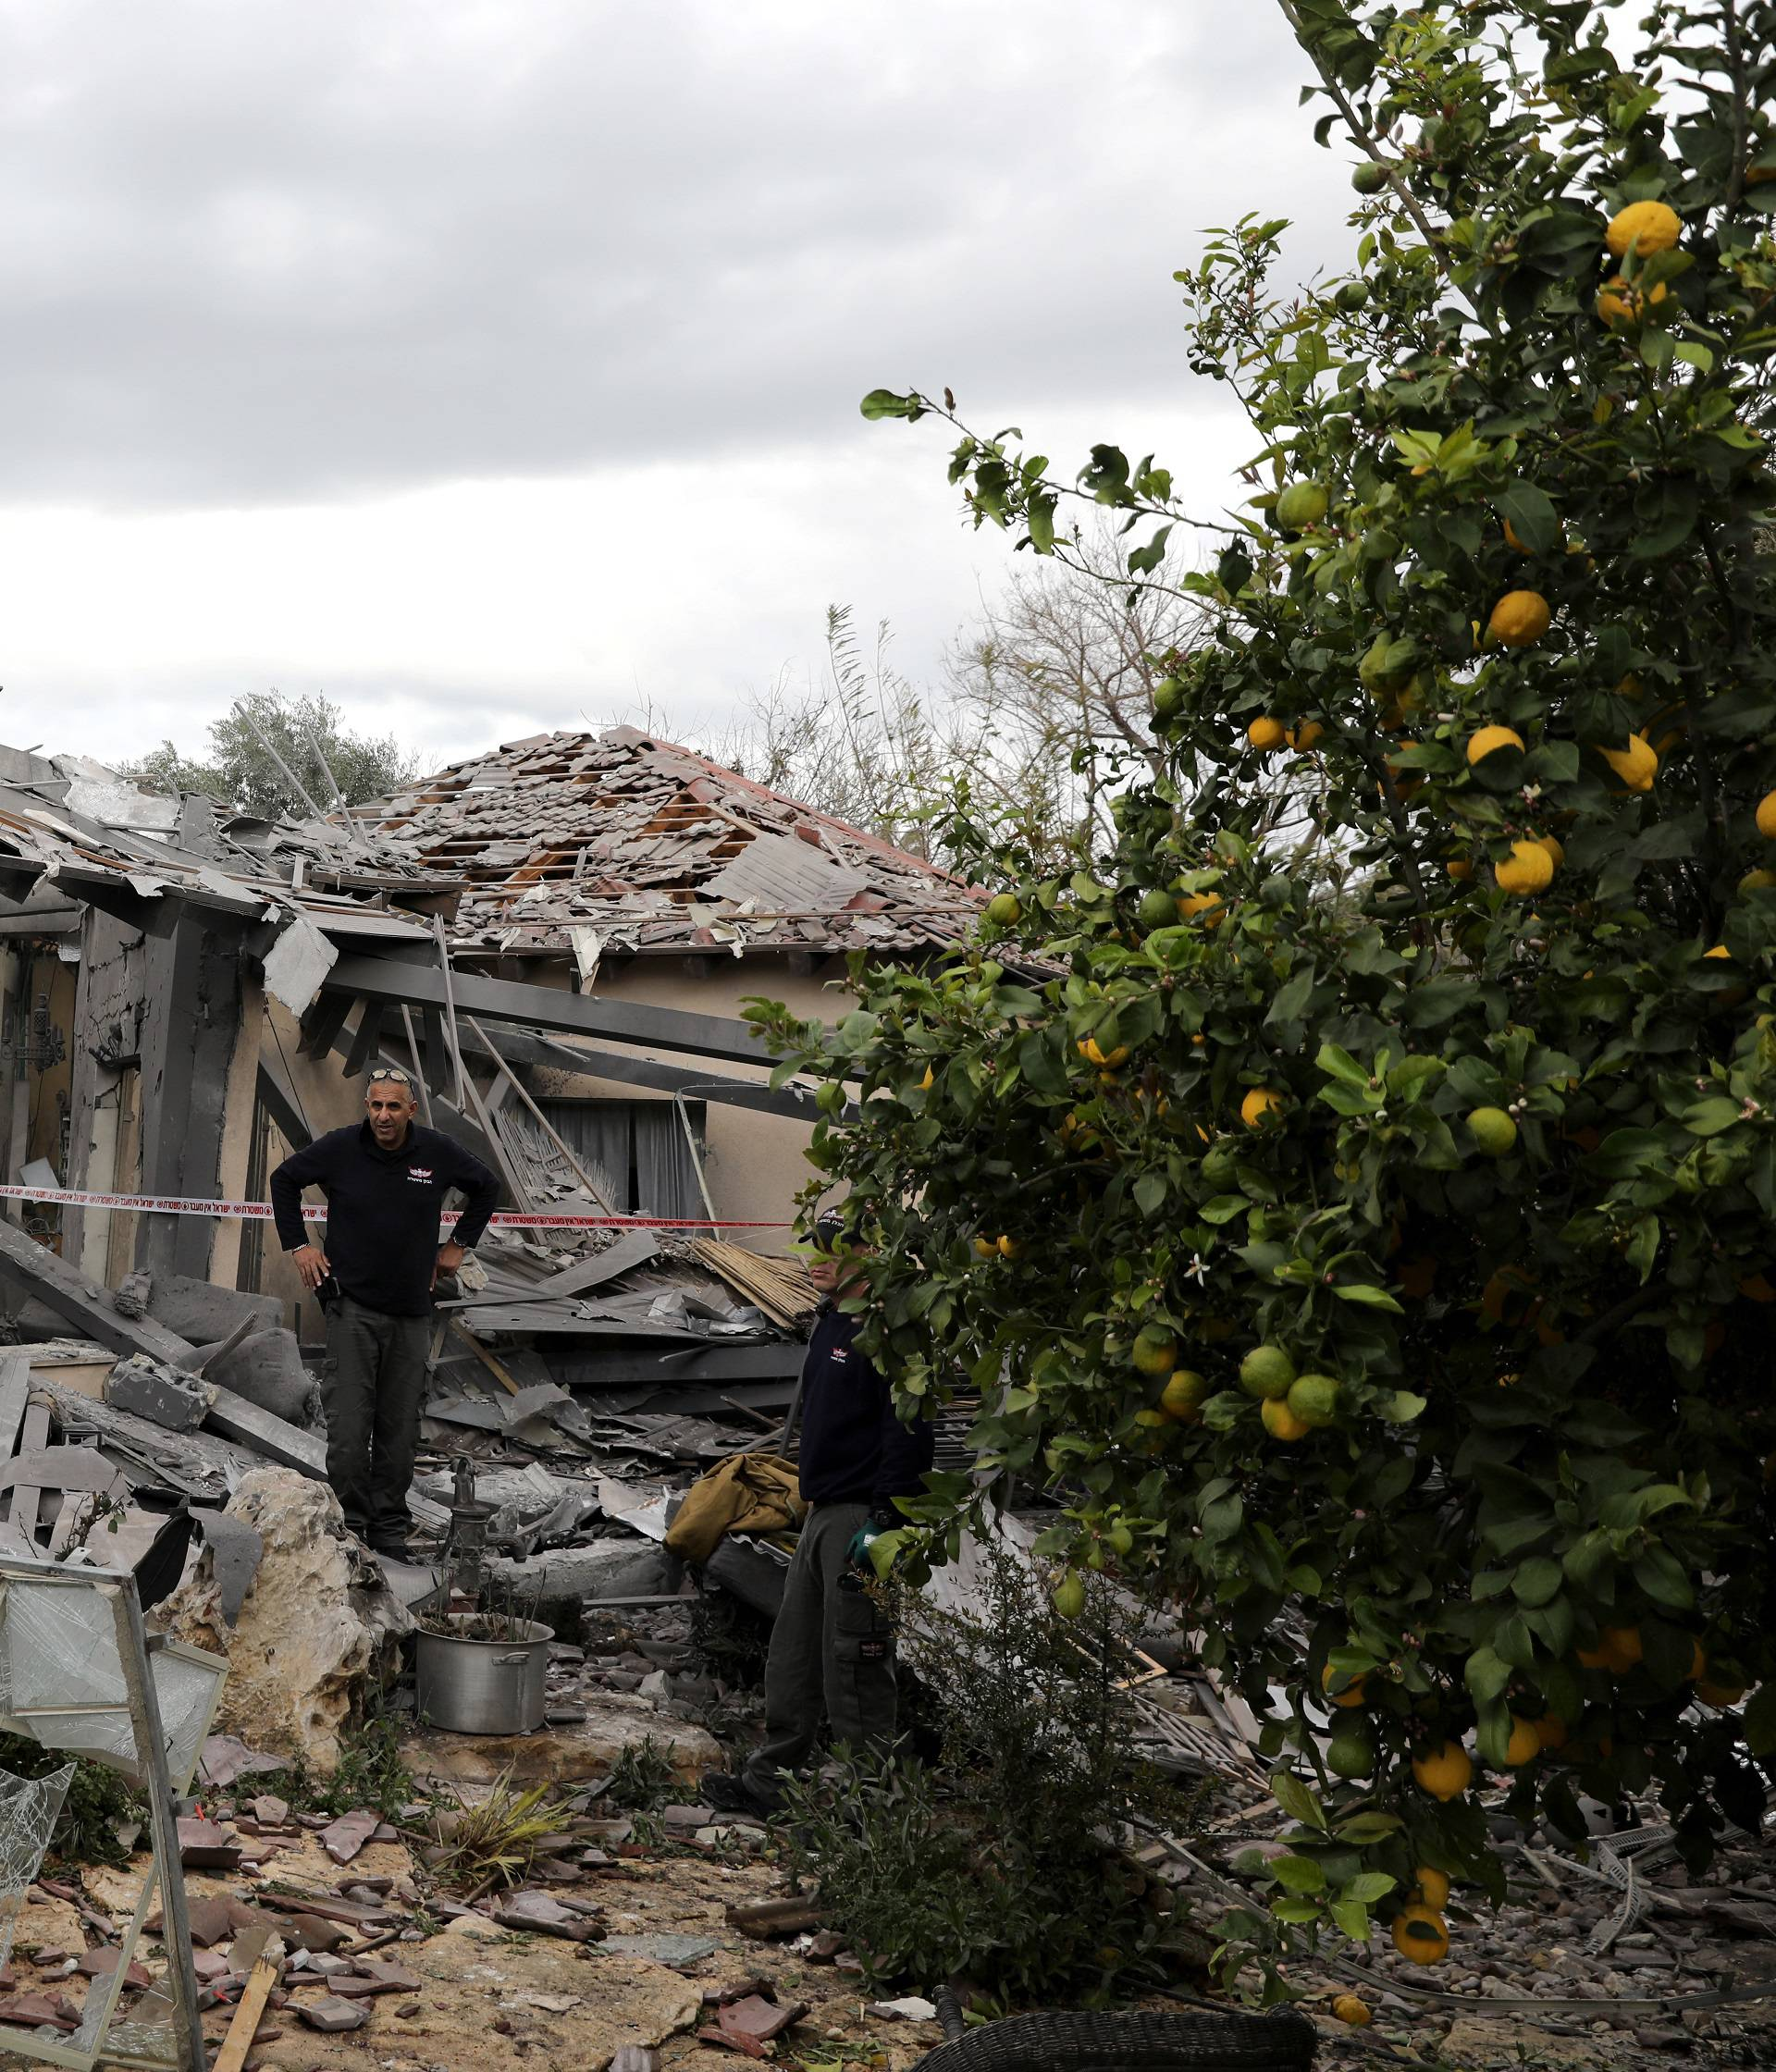 A police sapper inspects a damaged house that was hit by a rocket north of Tel Aviv Israel